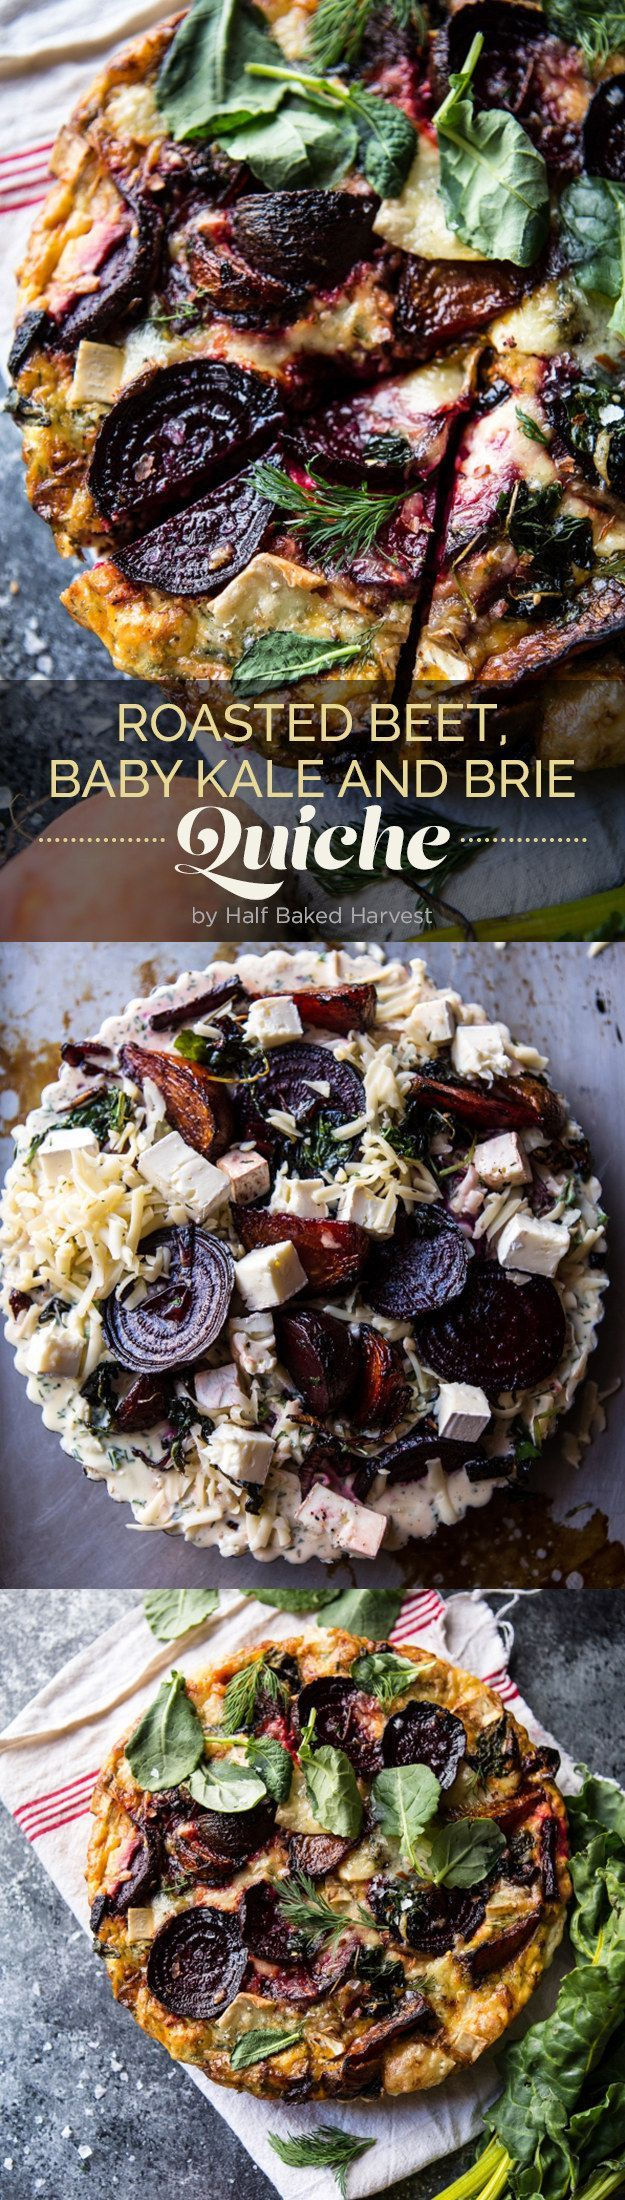 Roasted beet baby kale and brie quiche roasted beets brie and roasted beet baby kale and brie quiche forumfinder Image collections